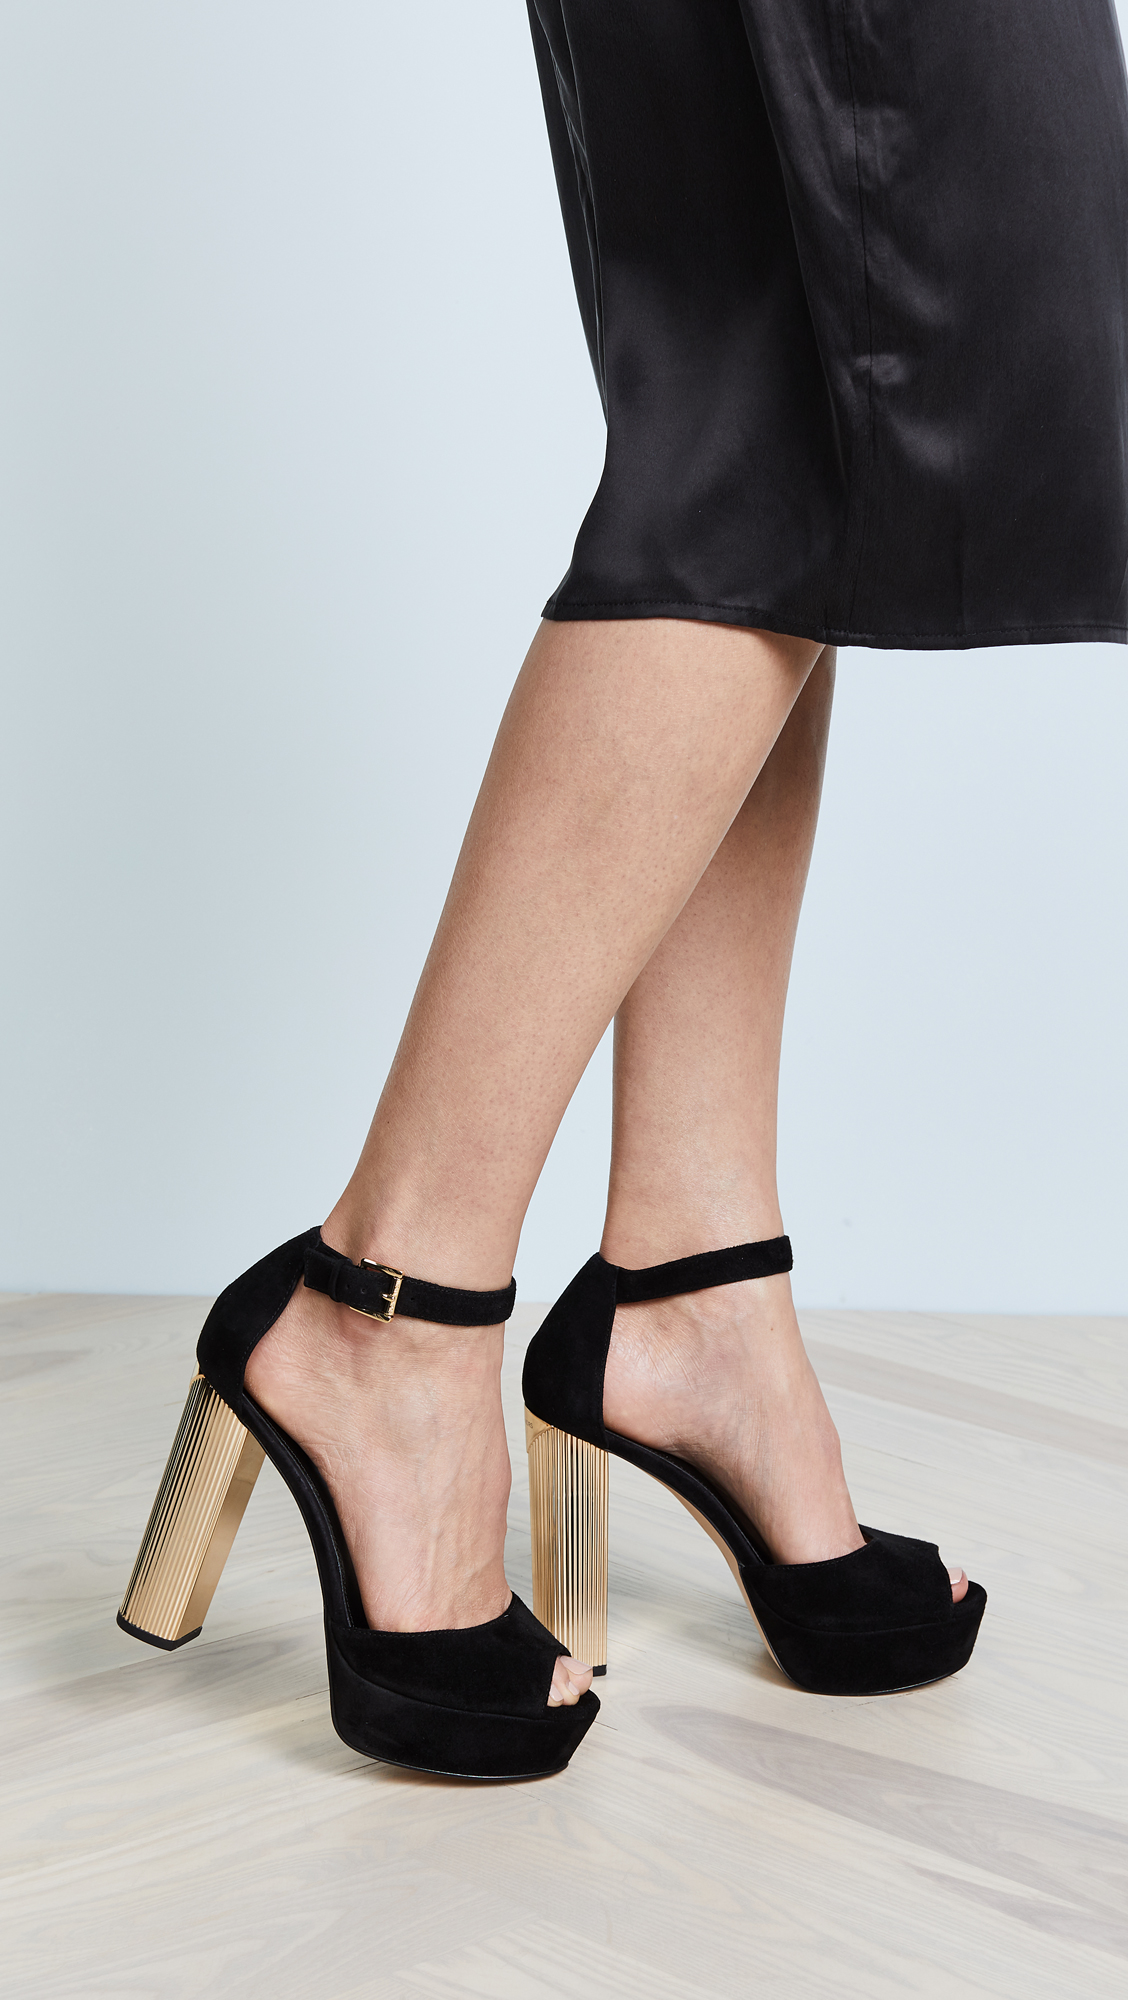 Trend of the Day: Platform Sandals!